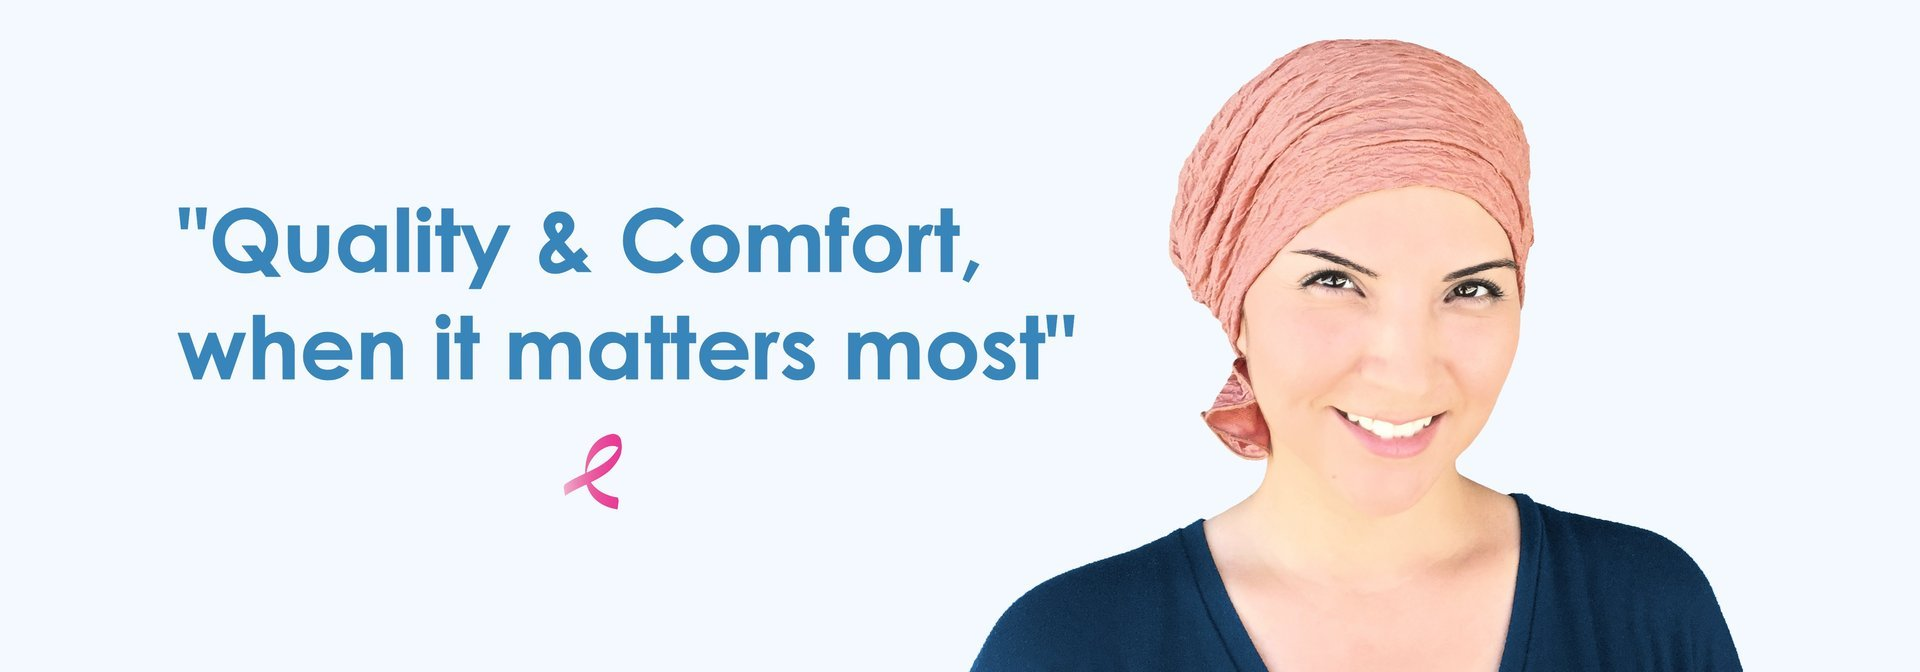 Quality and Comfort, when it matters most.